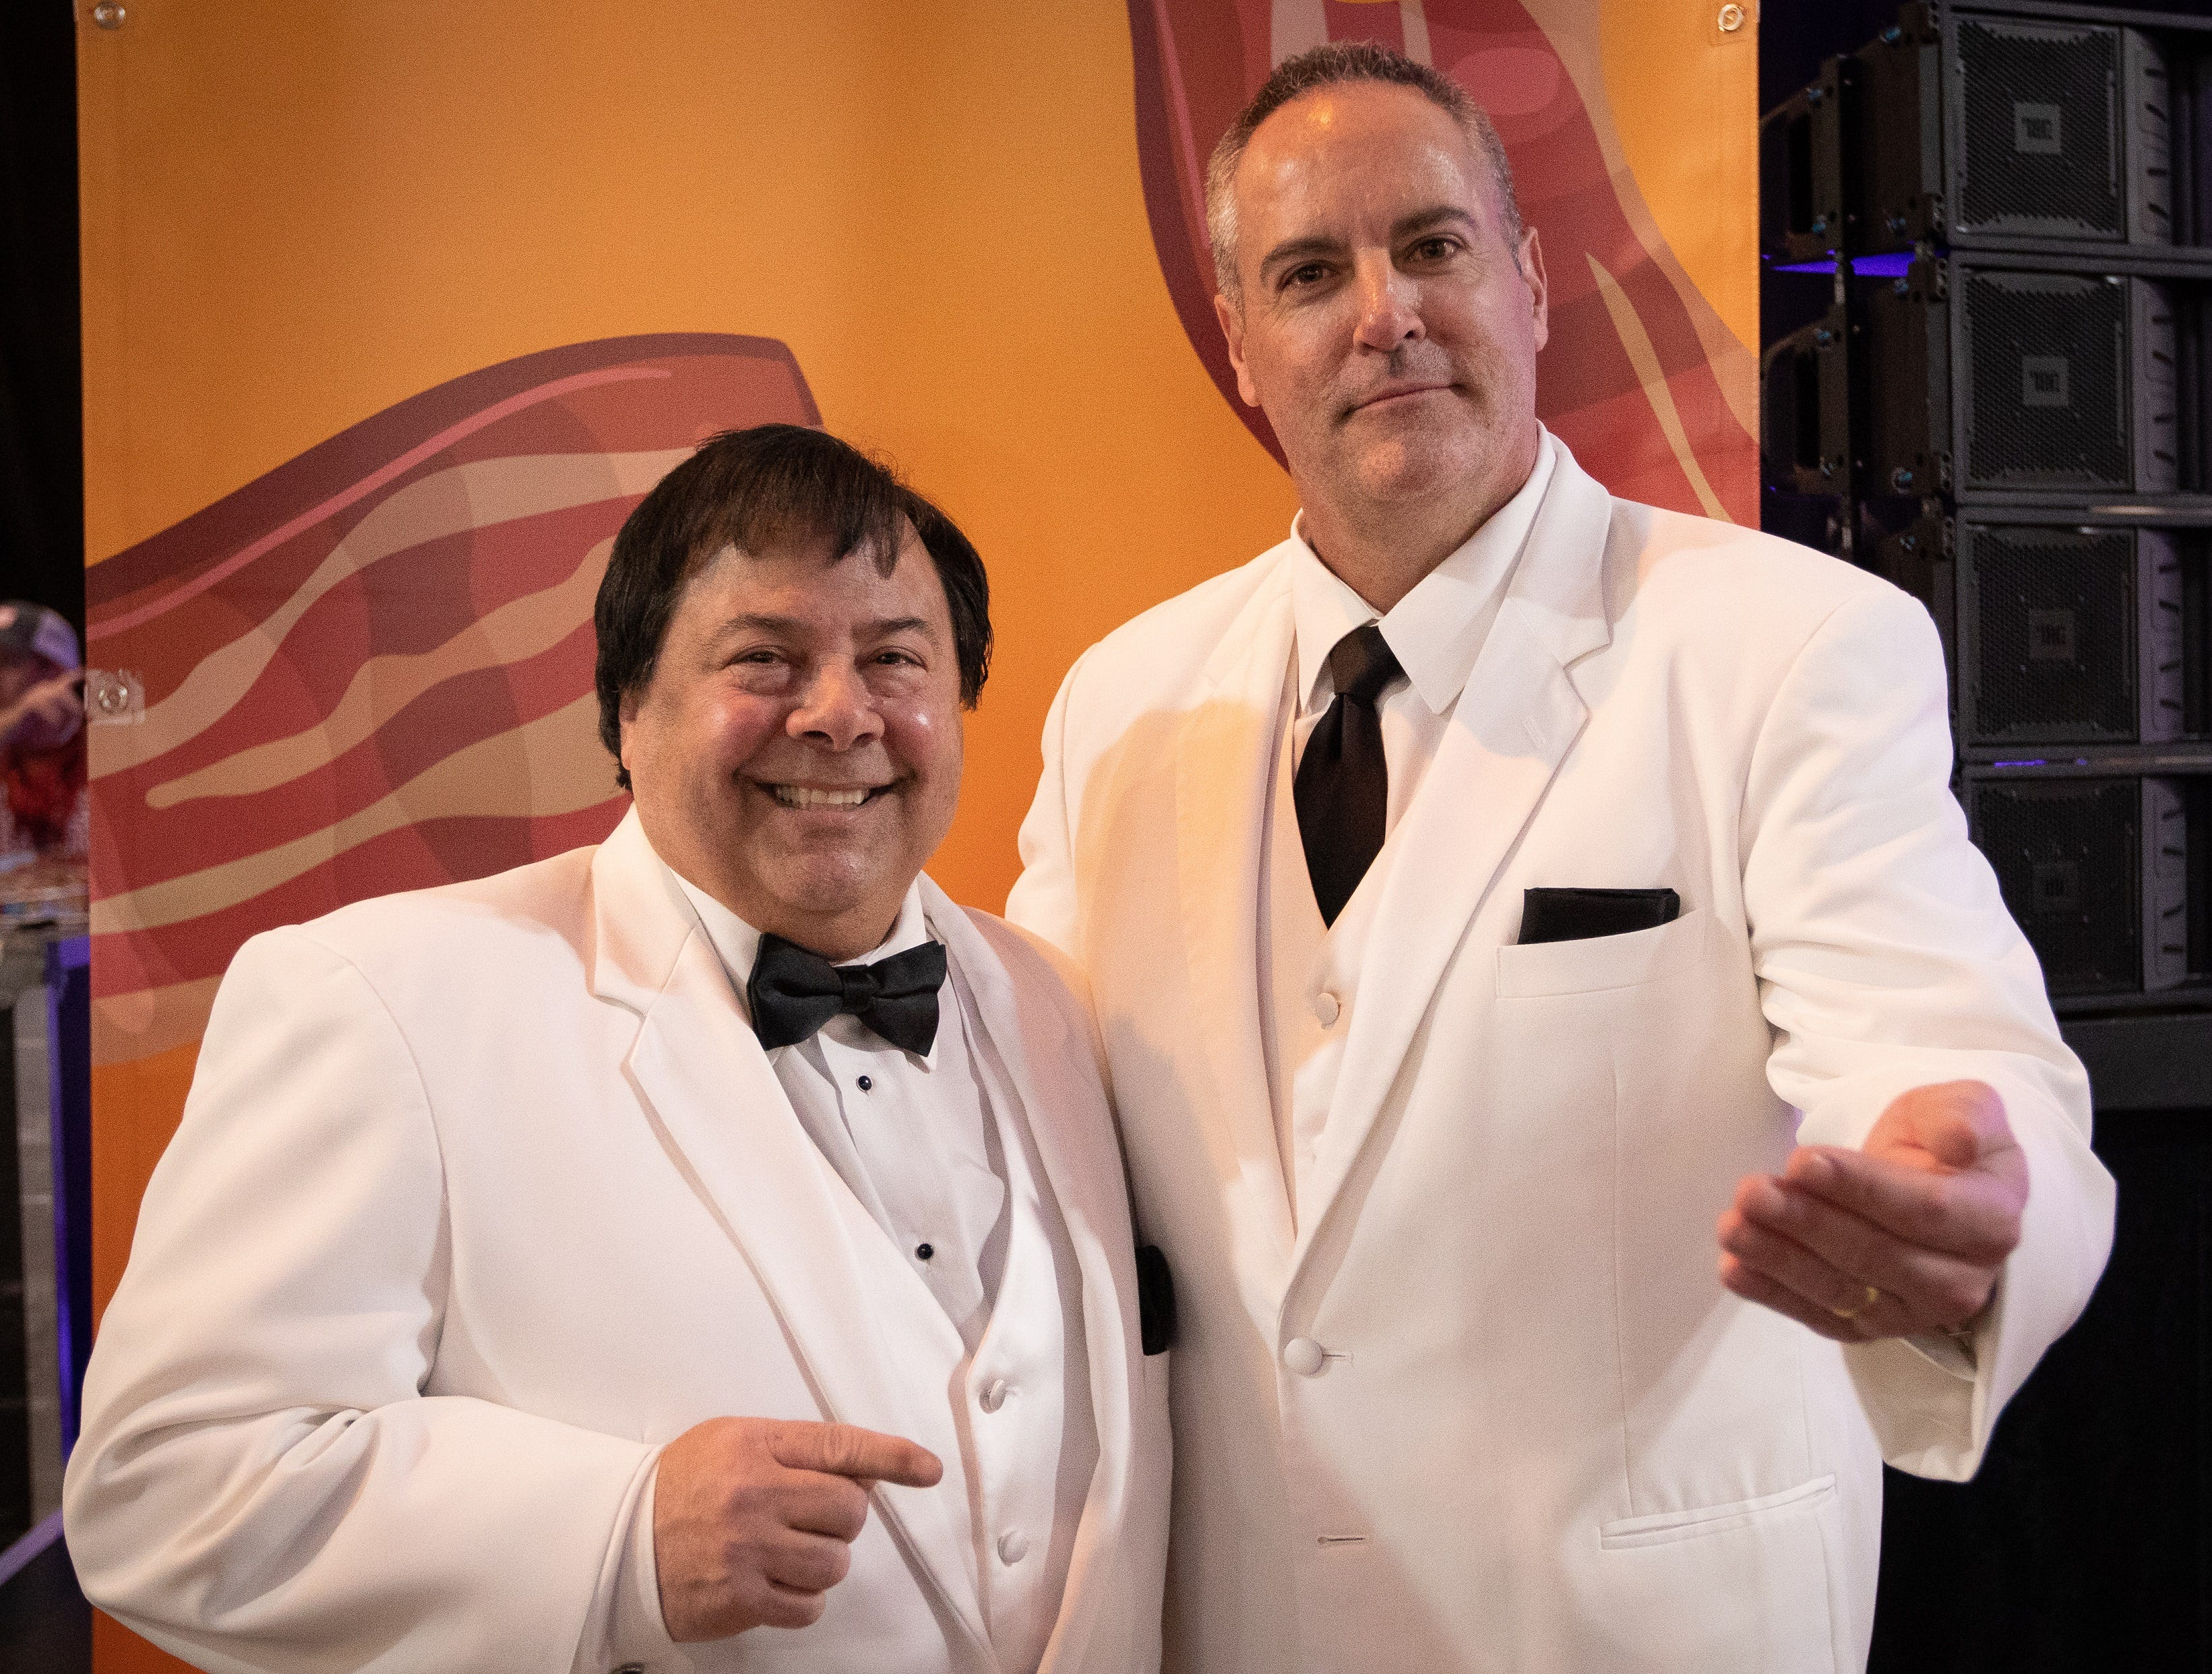 Paul Schulte, of Urbandale, and Davit Hott, of Des Moines, pose for a photo after winning the costume contest as characters from the tv show Fantasy Island during the Bacon Fest at Hy-Vee Hall on Feb. 16, 2019 in Des Moines, Iowa.